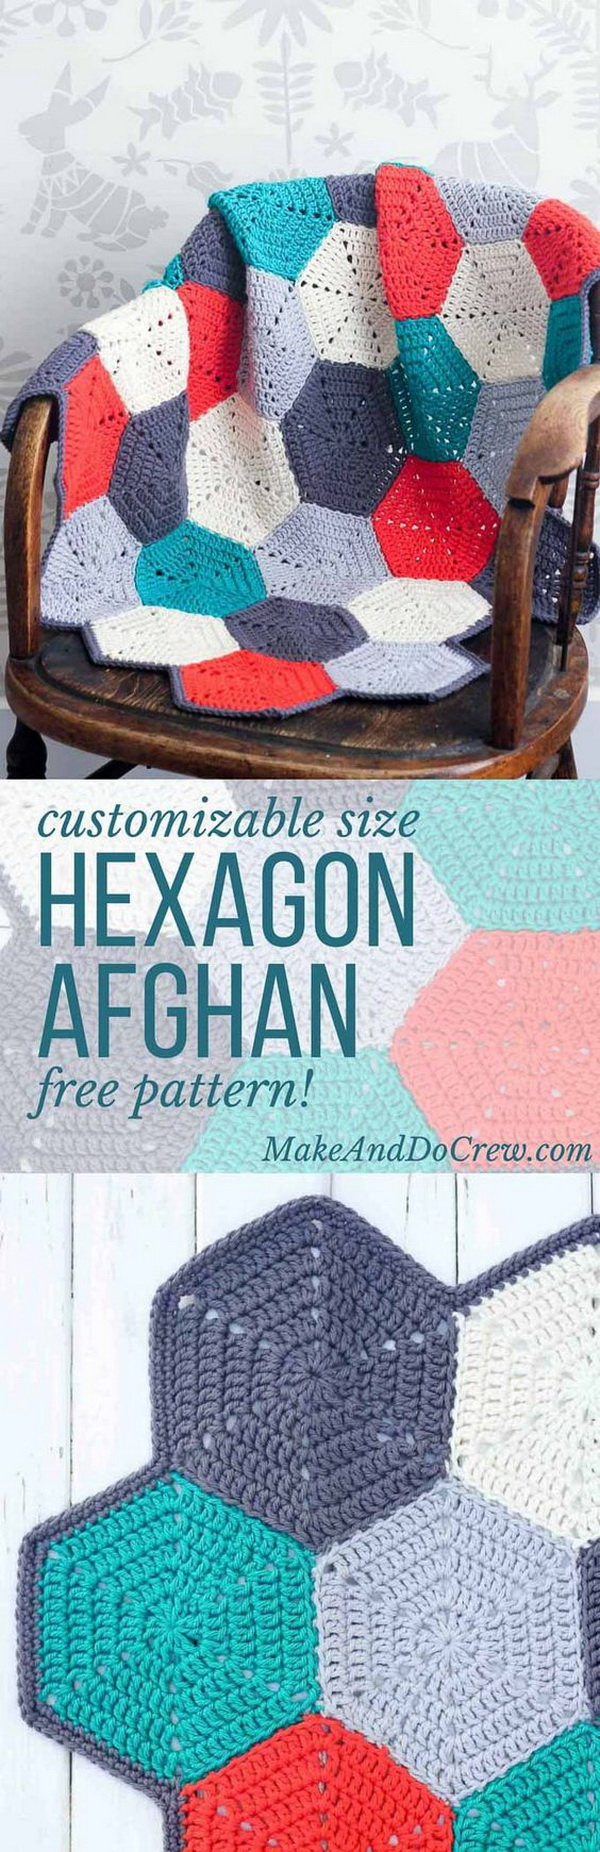 Happy Hexagons Free Crochet Afghan Pattern.